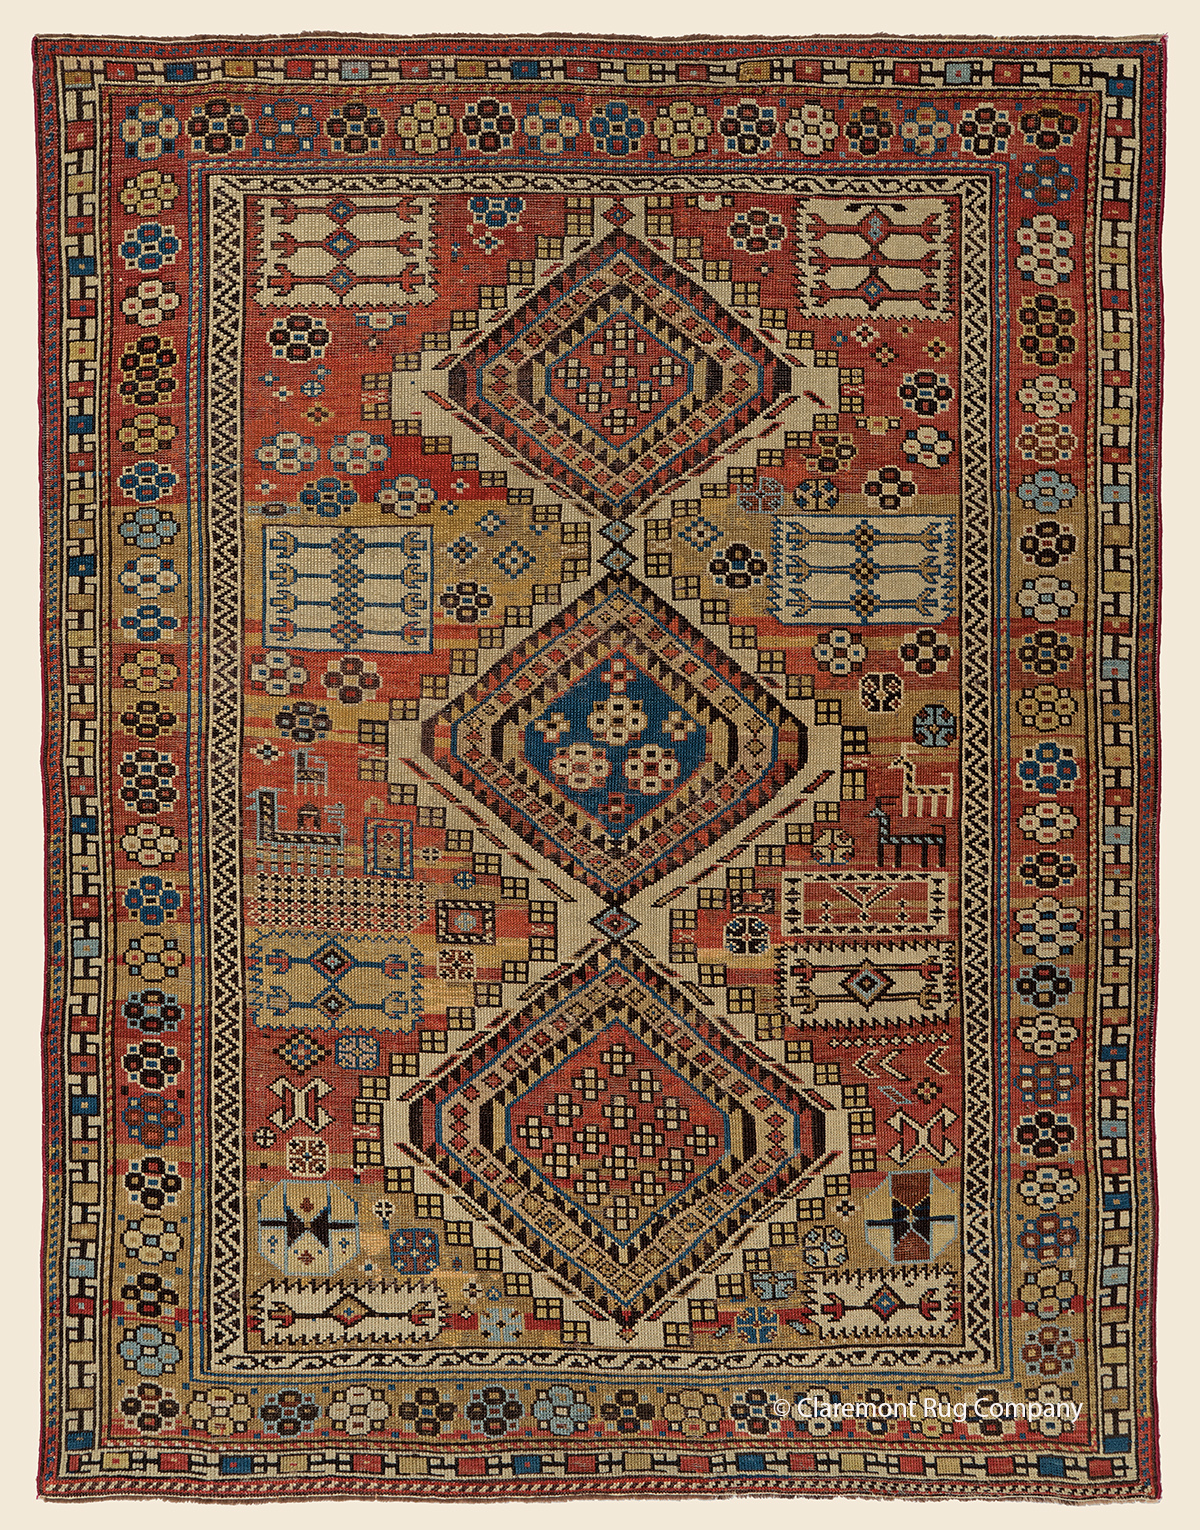 19th century Antique Caucasian Shirvan tribal carpet with hexagonal medallions 3ft x 4ft